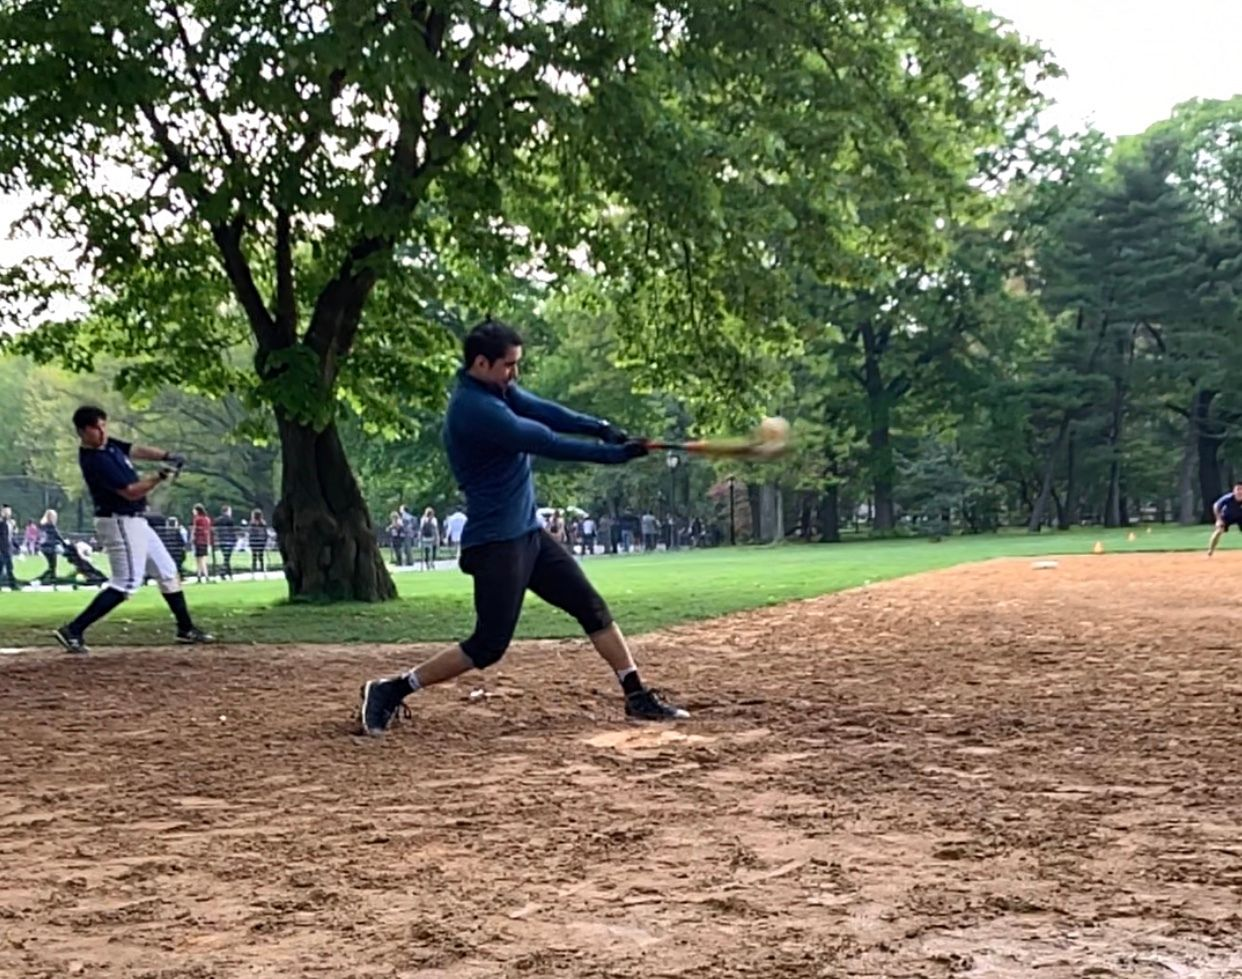 Central Park Saturday Afternoon Co-Ed Softball